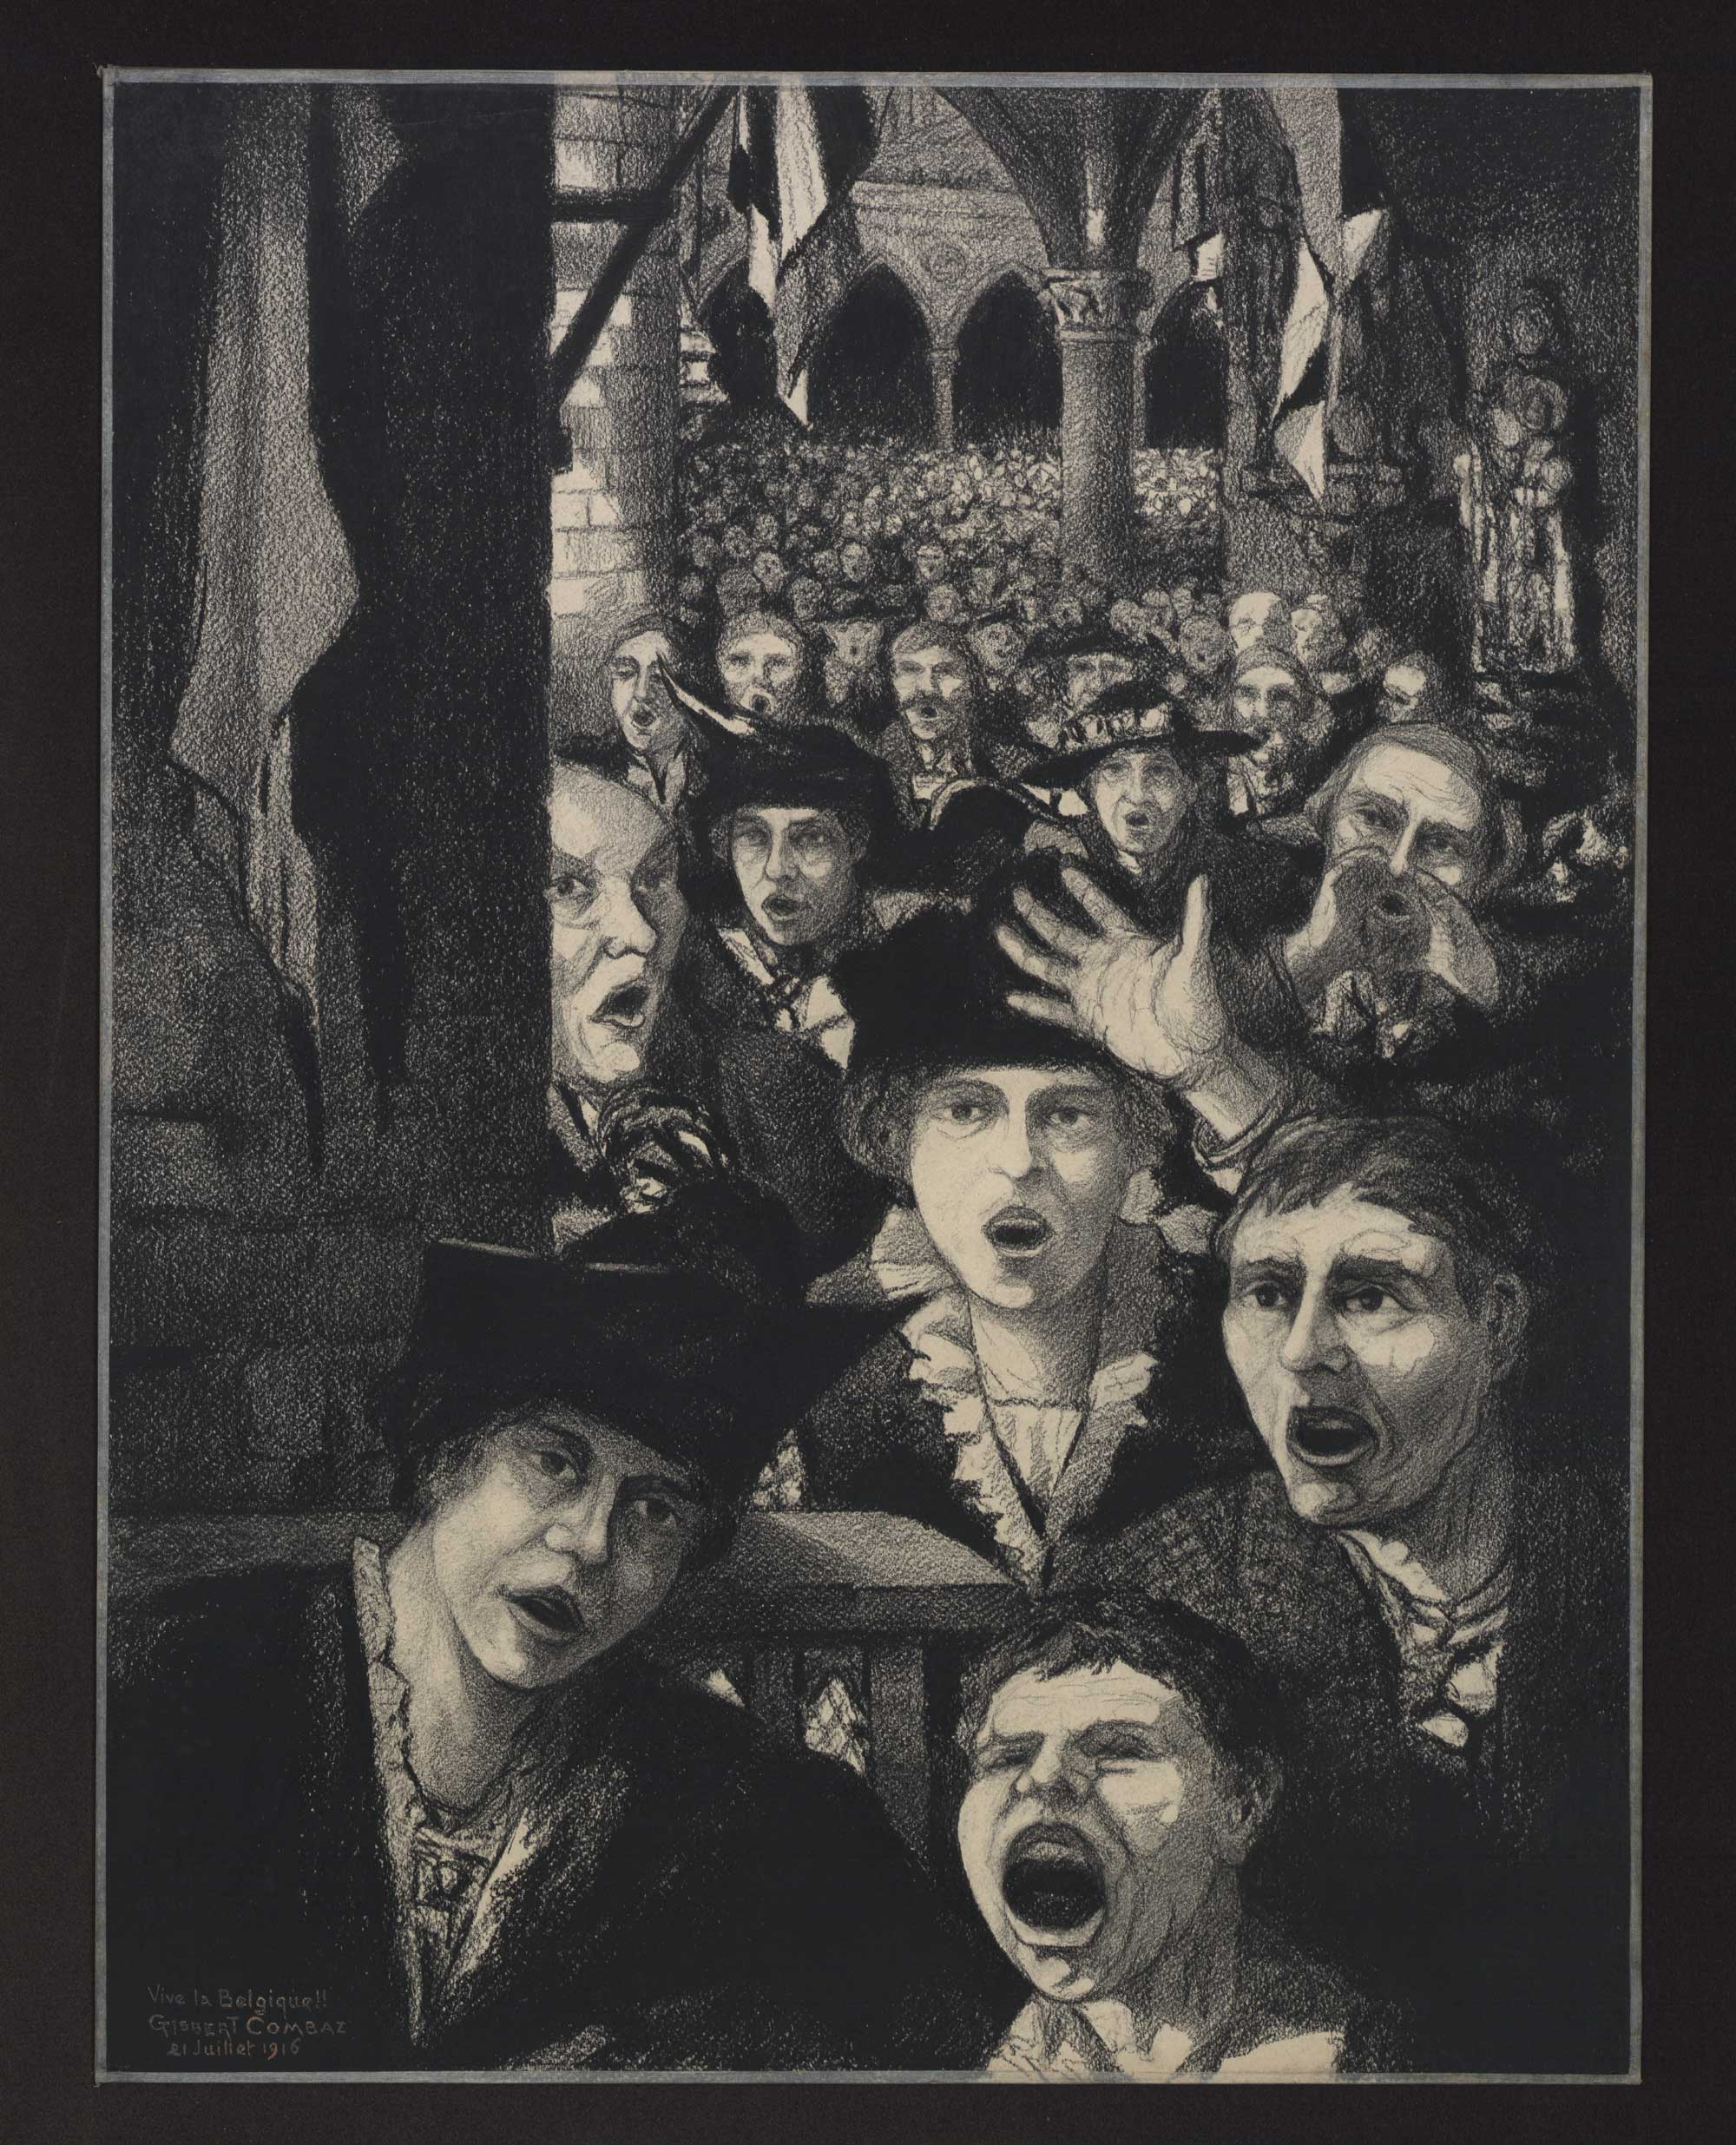 Picture by Belgian artist Gisbert Combaz (1869-1941) showing a crowd gathered on National Day on 21 July 1916, shouting 'Long live Belgium!'.